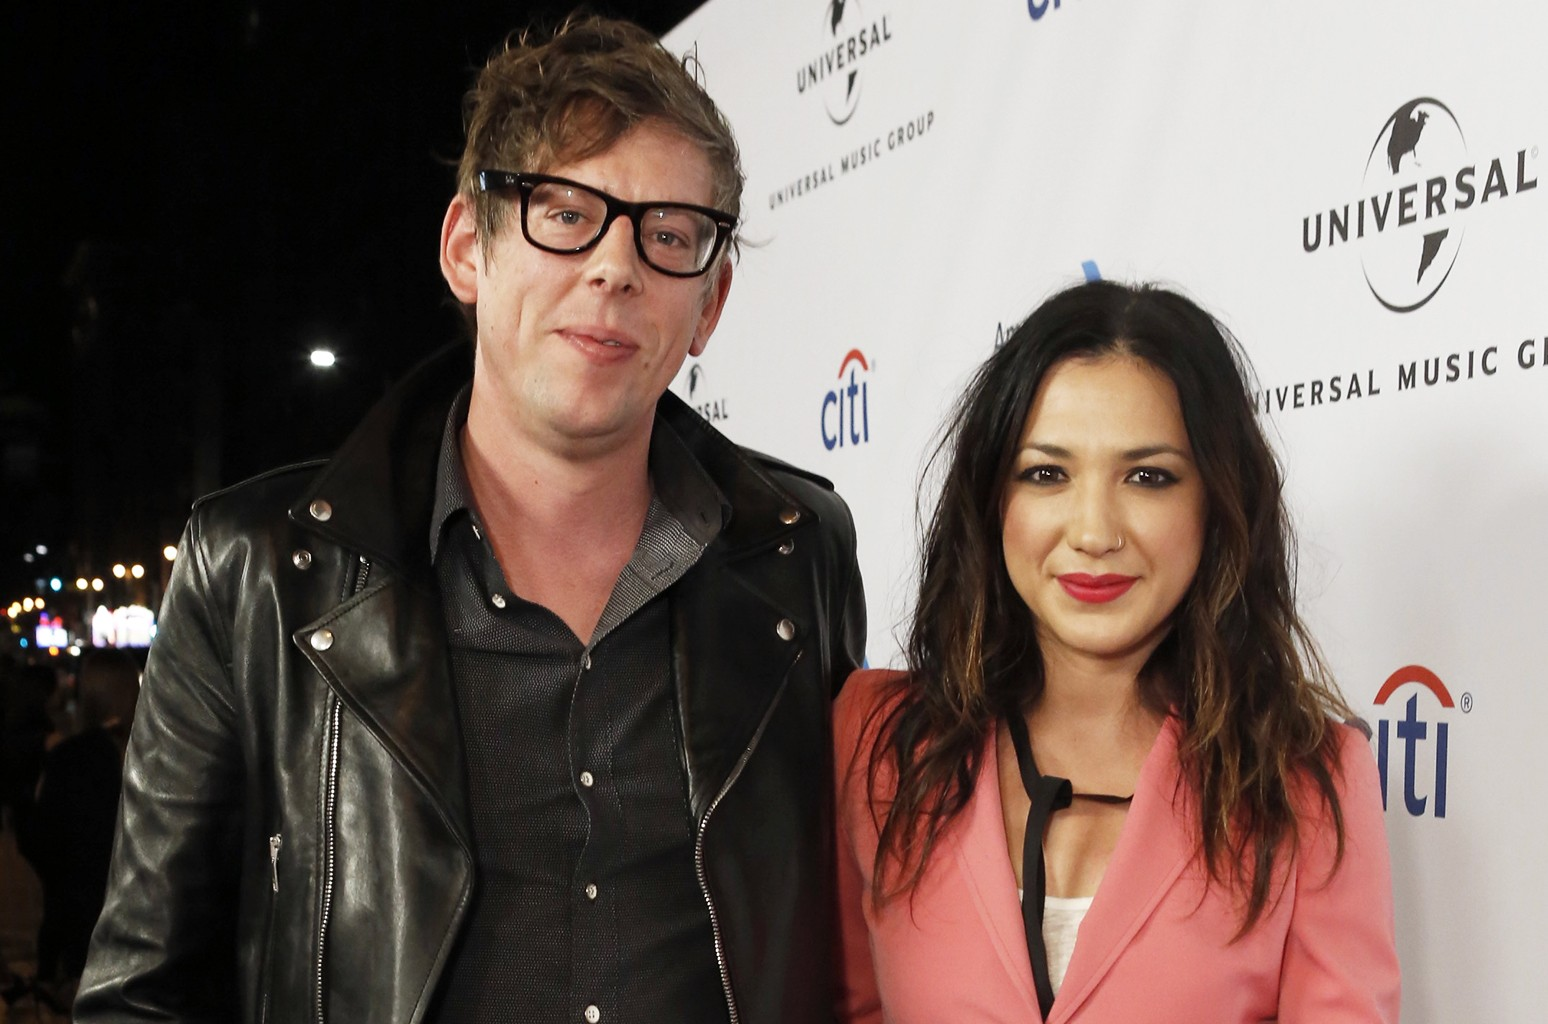 Patrick Carney, left, and Michelle Branch arrive at Universal Music Group Grammy Party Presented by American Airlines and Citi at The Theatre at Ace Hotel on Monday, Feb. 15, 2016, in Los Angeles, CA. (Photo by Eric Charbonneau/Invision for Citi/AP Images